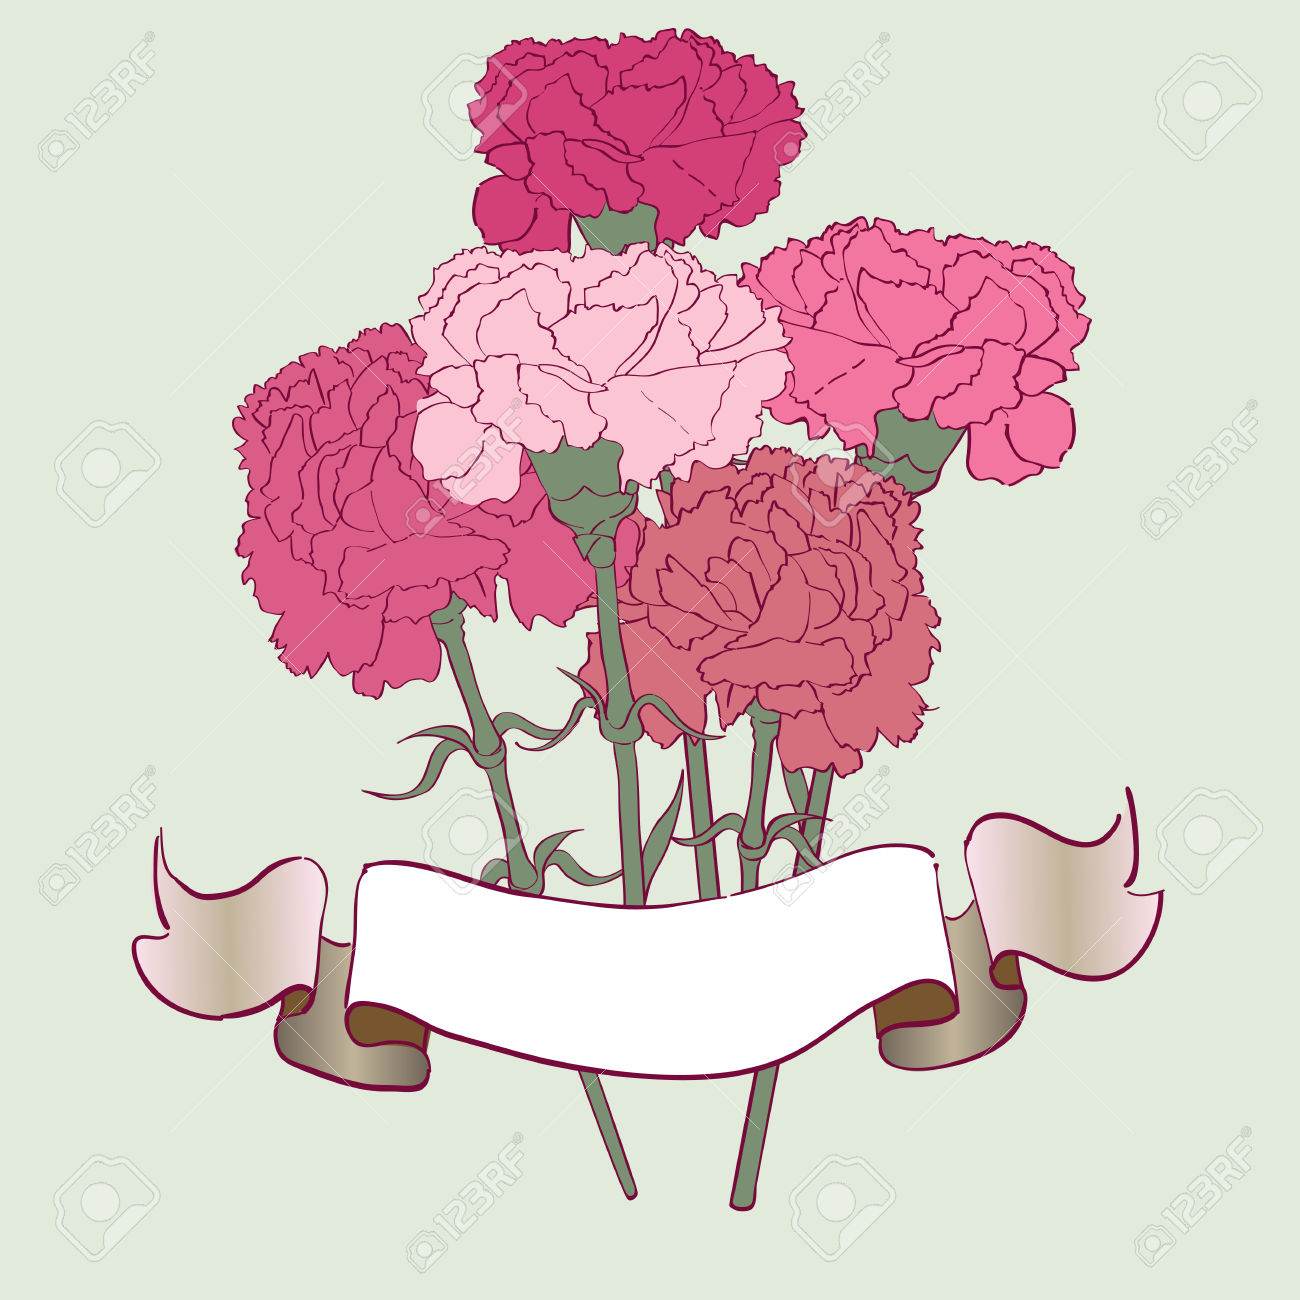 689 Carnation Pink Stock Illustrations, Cliparts And Royalty Free.